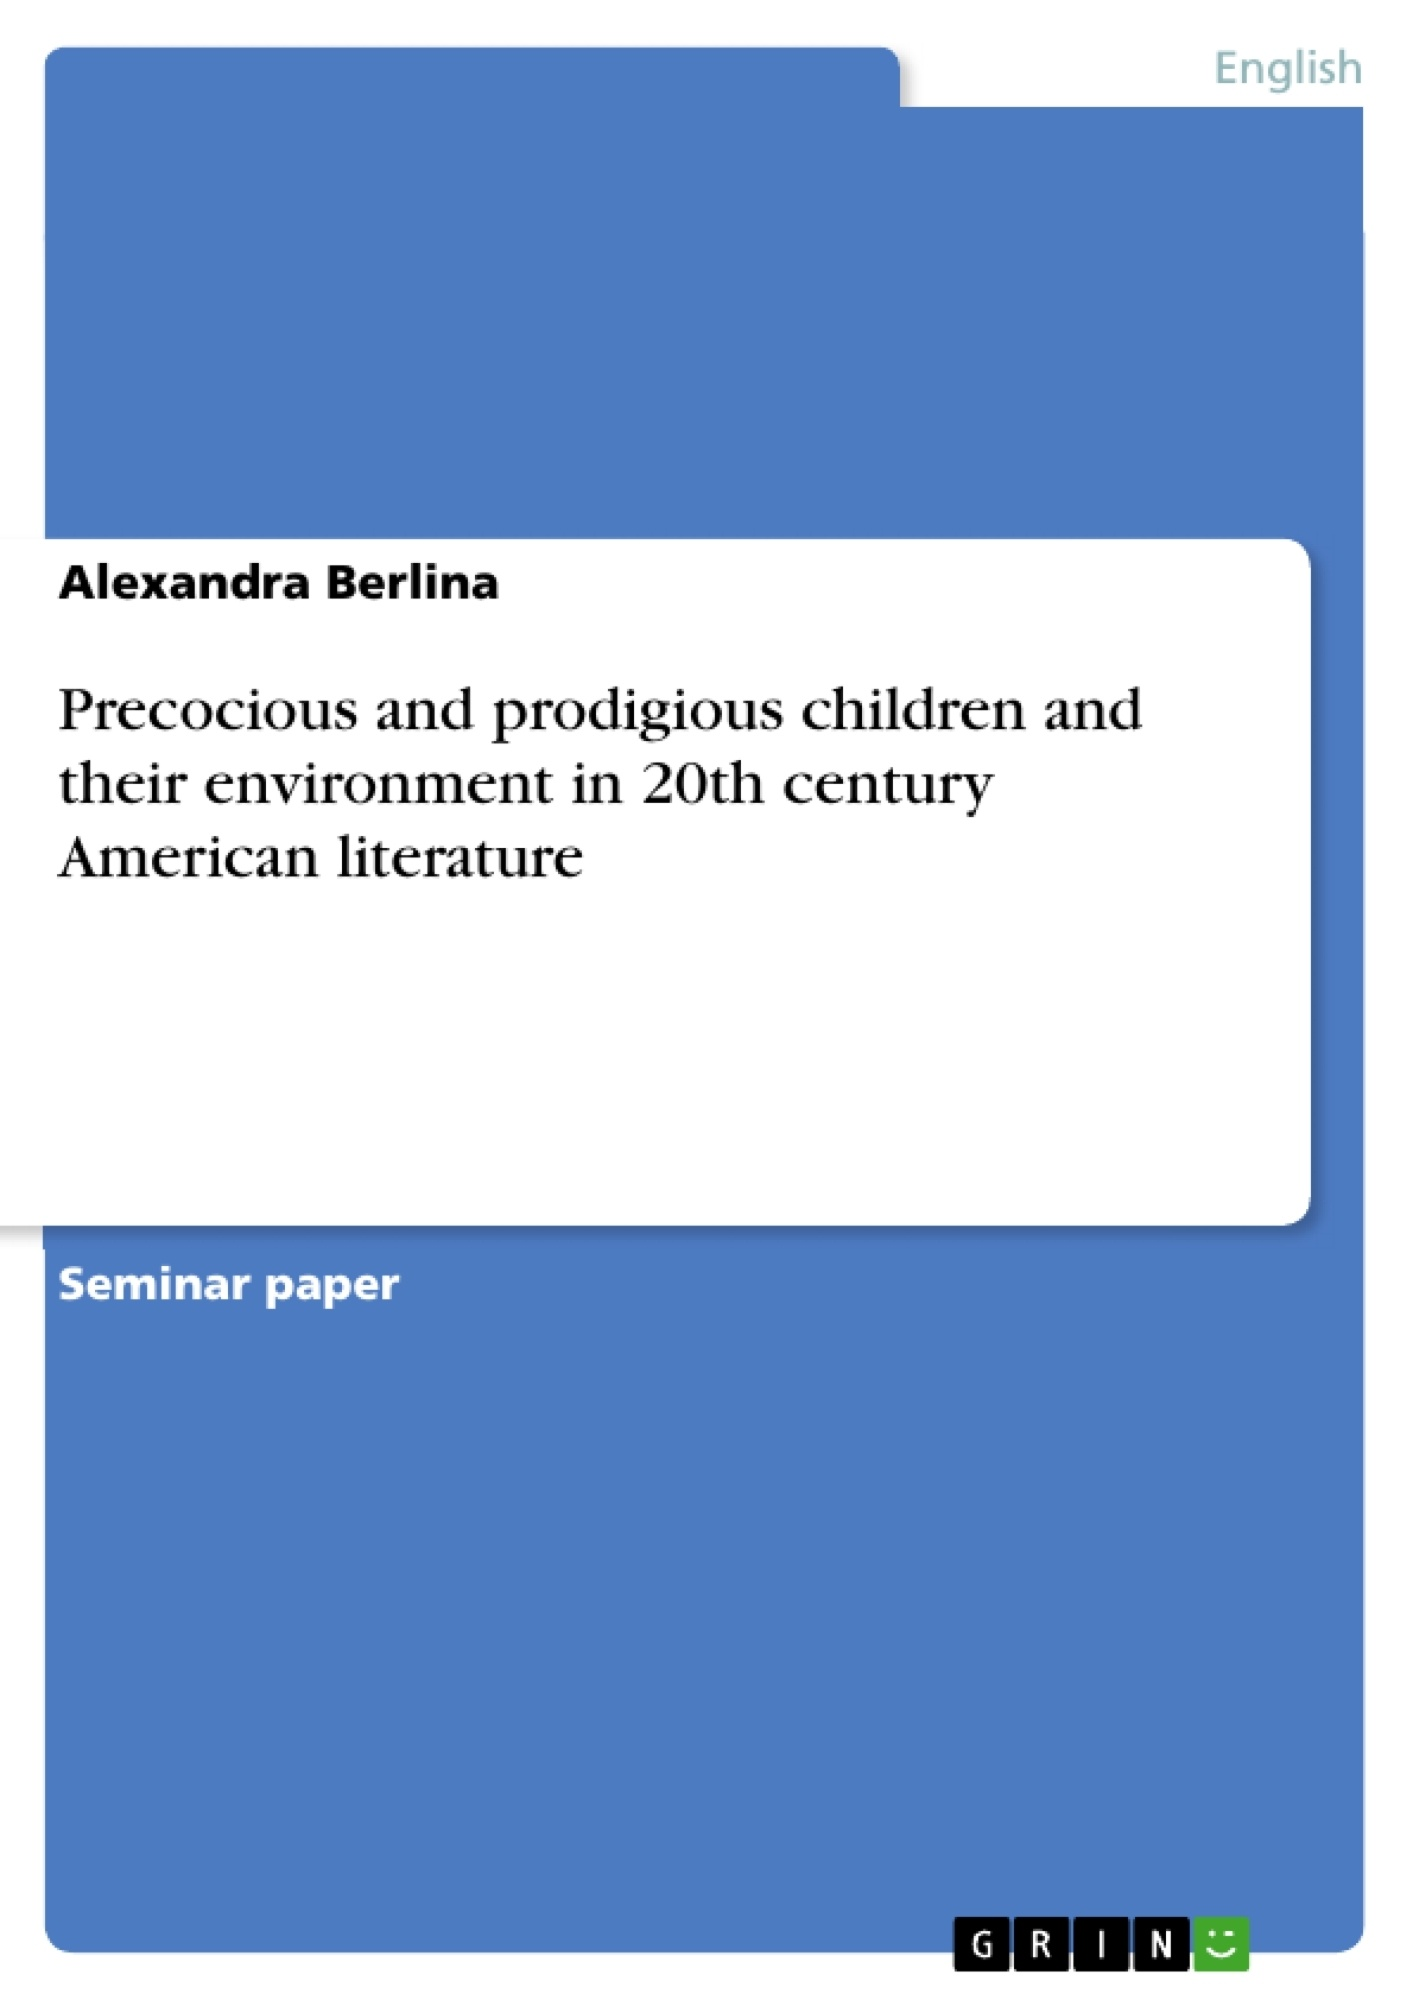 Title: Precocious and prodigious children and their environment in 20th century American literature